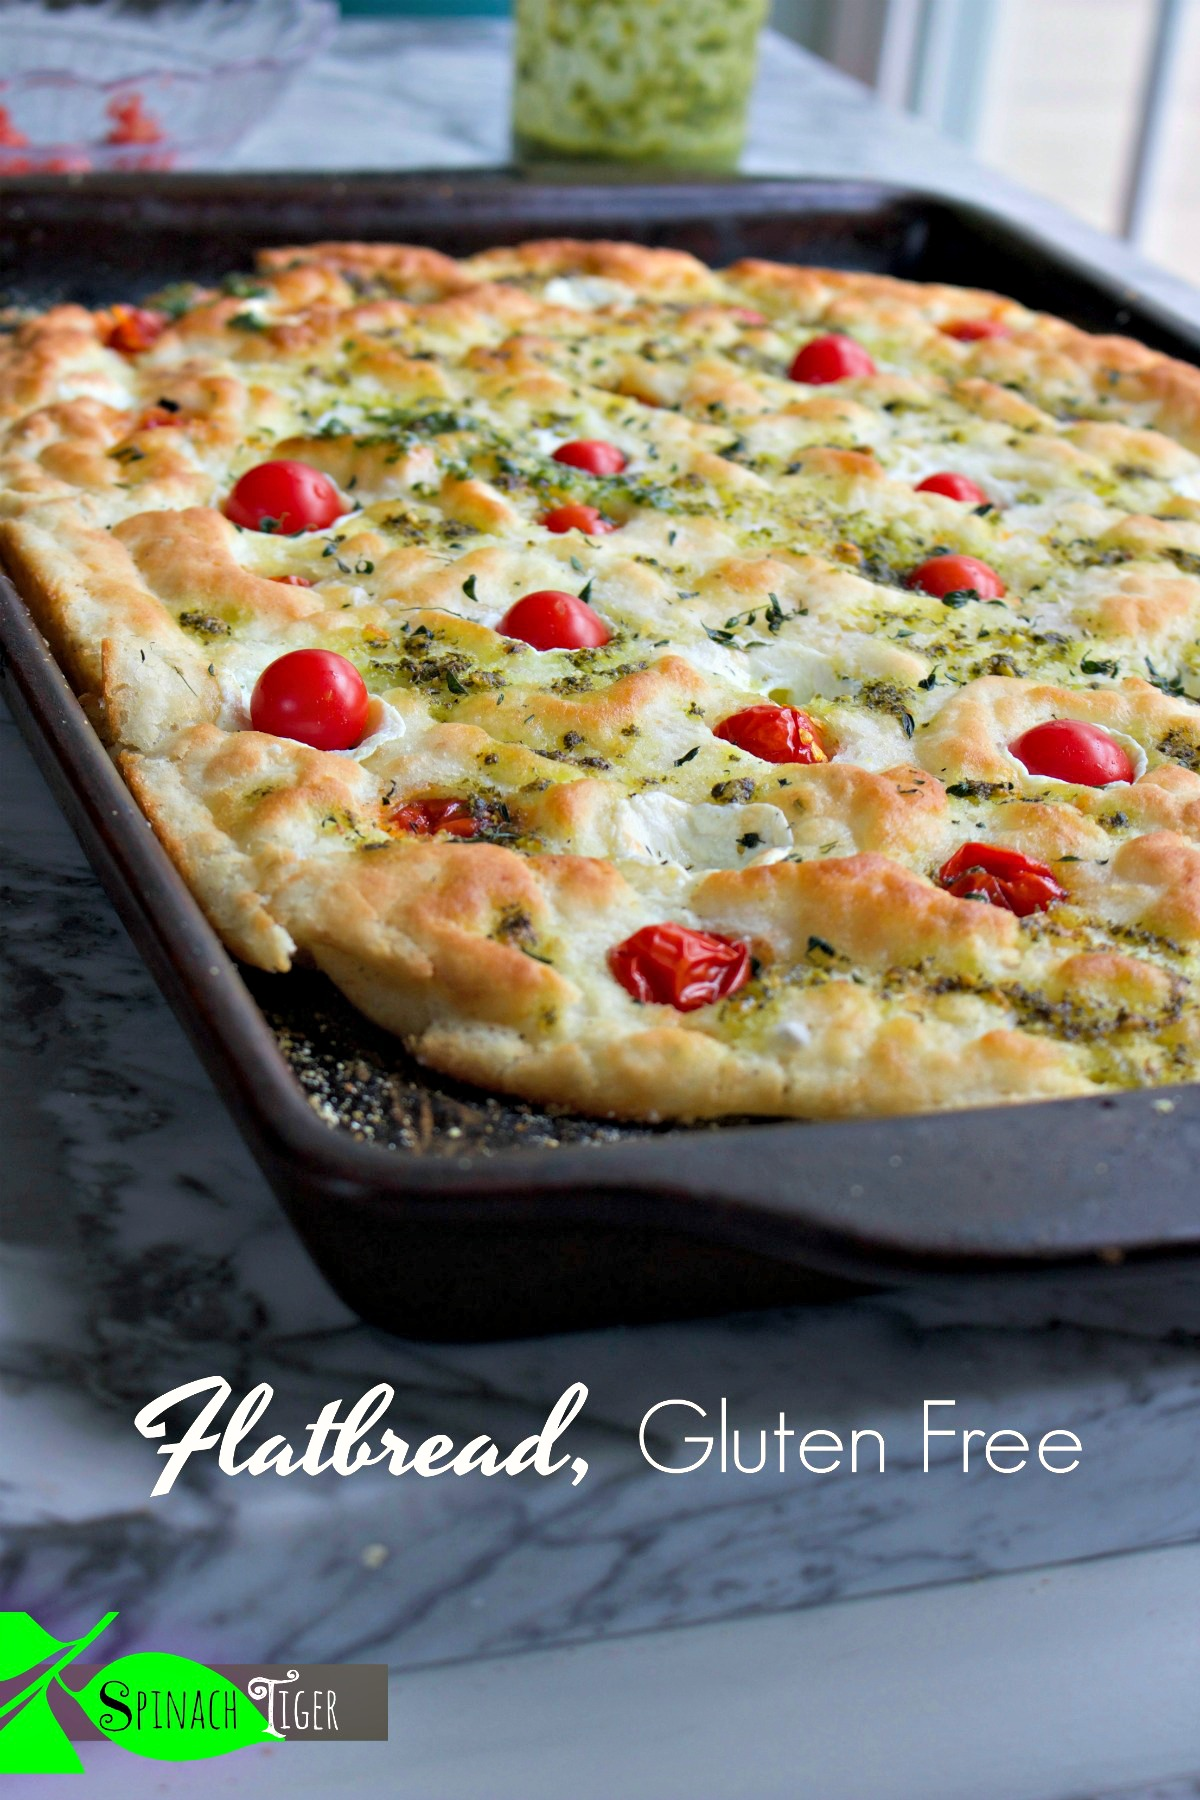 Best Gluten Free Focaccia from Spinach Tiger